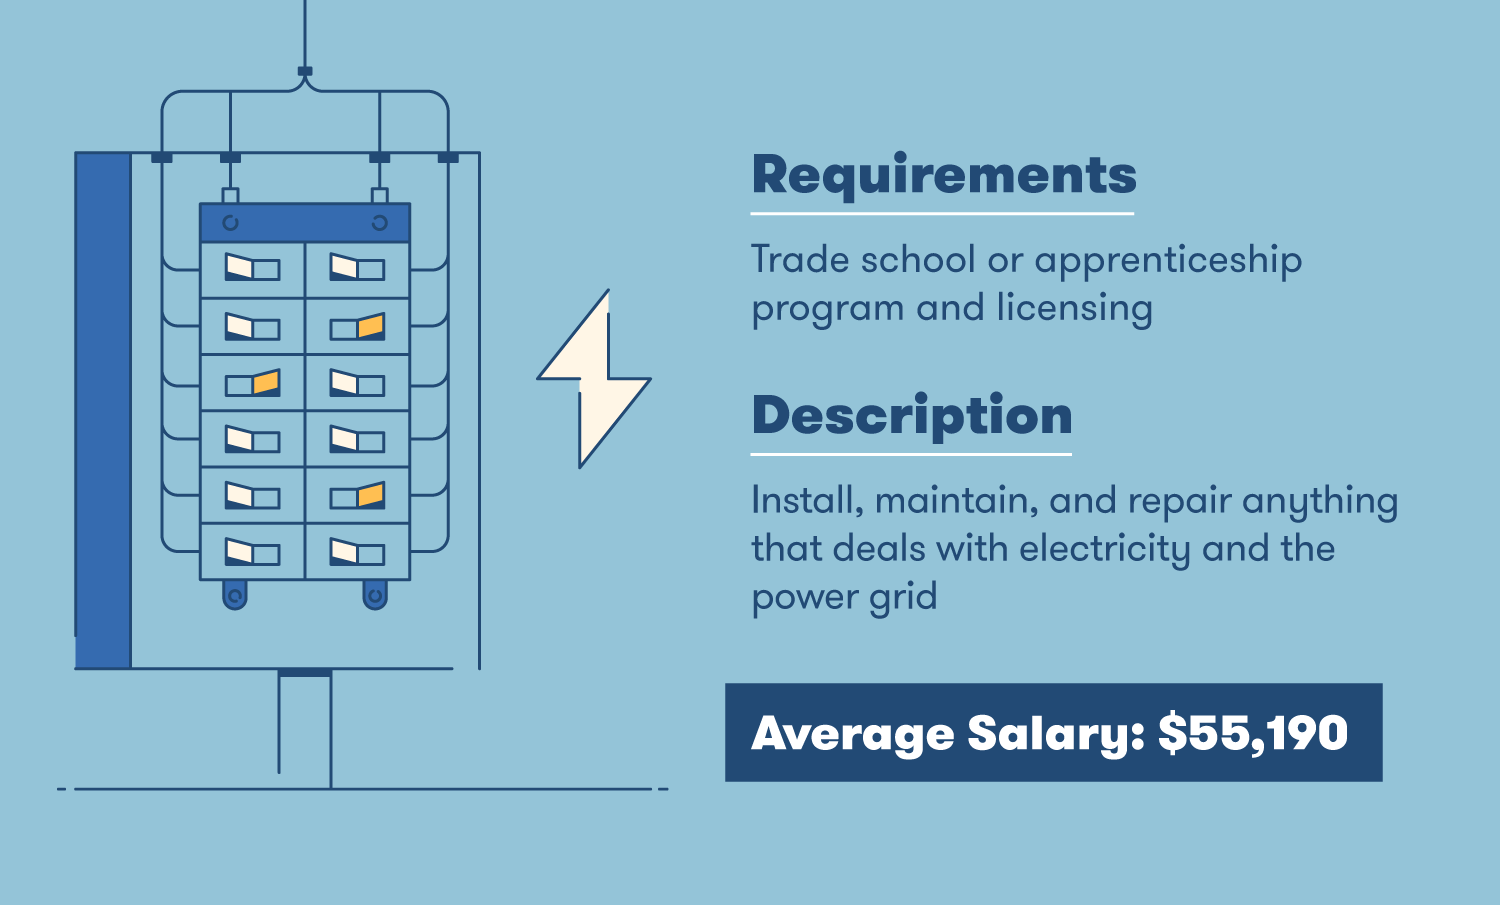 electrician requirements description and average salary